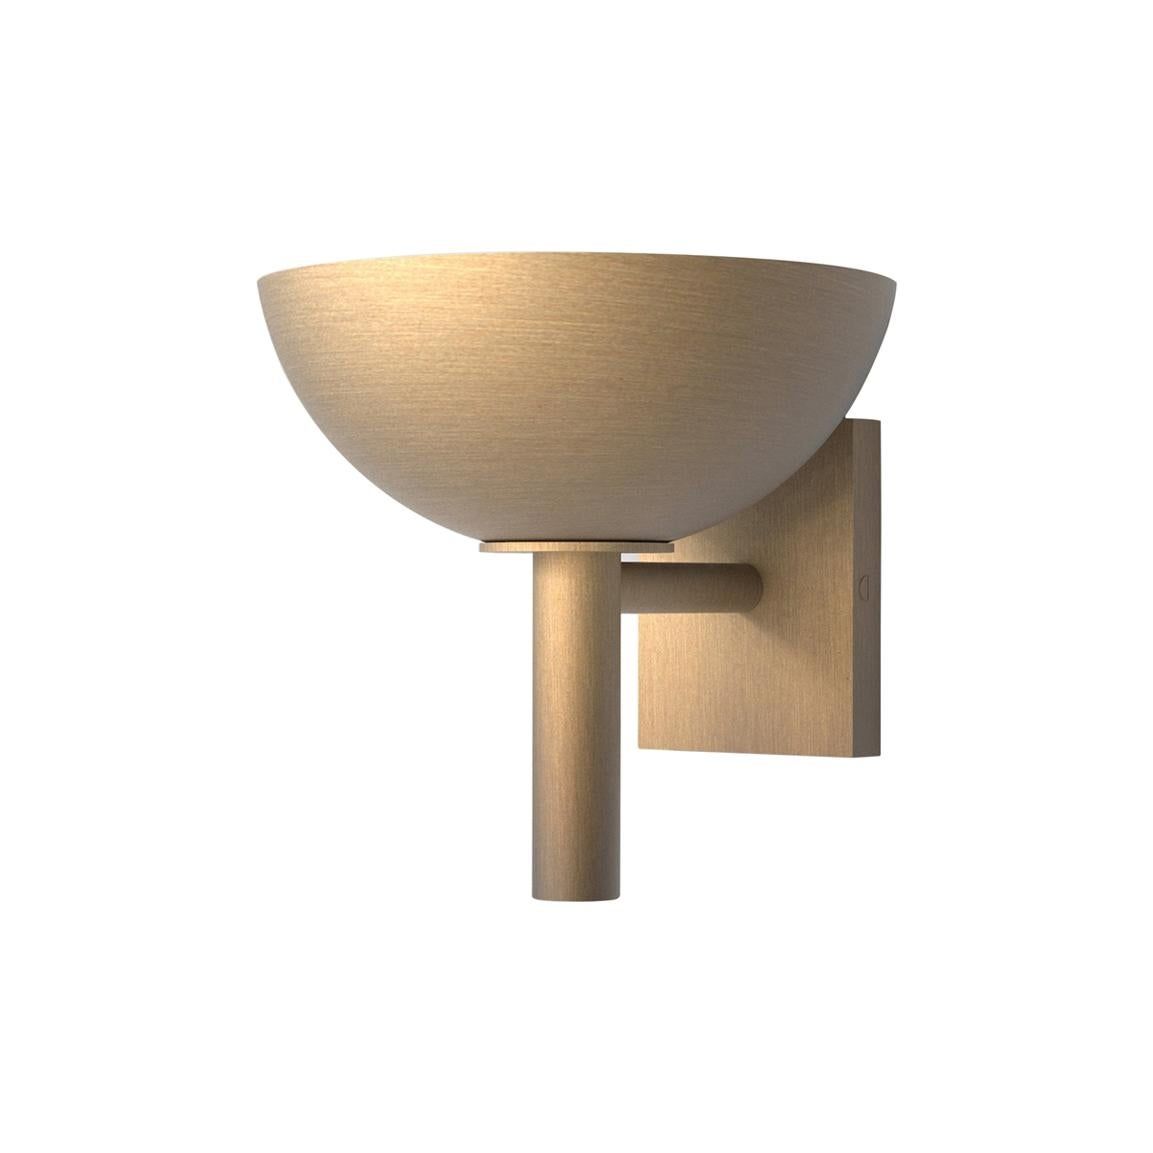 Contemporary 200 Sconce in Brushed Brass by Orphan Work